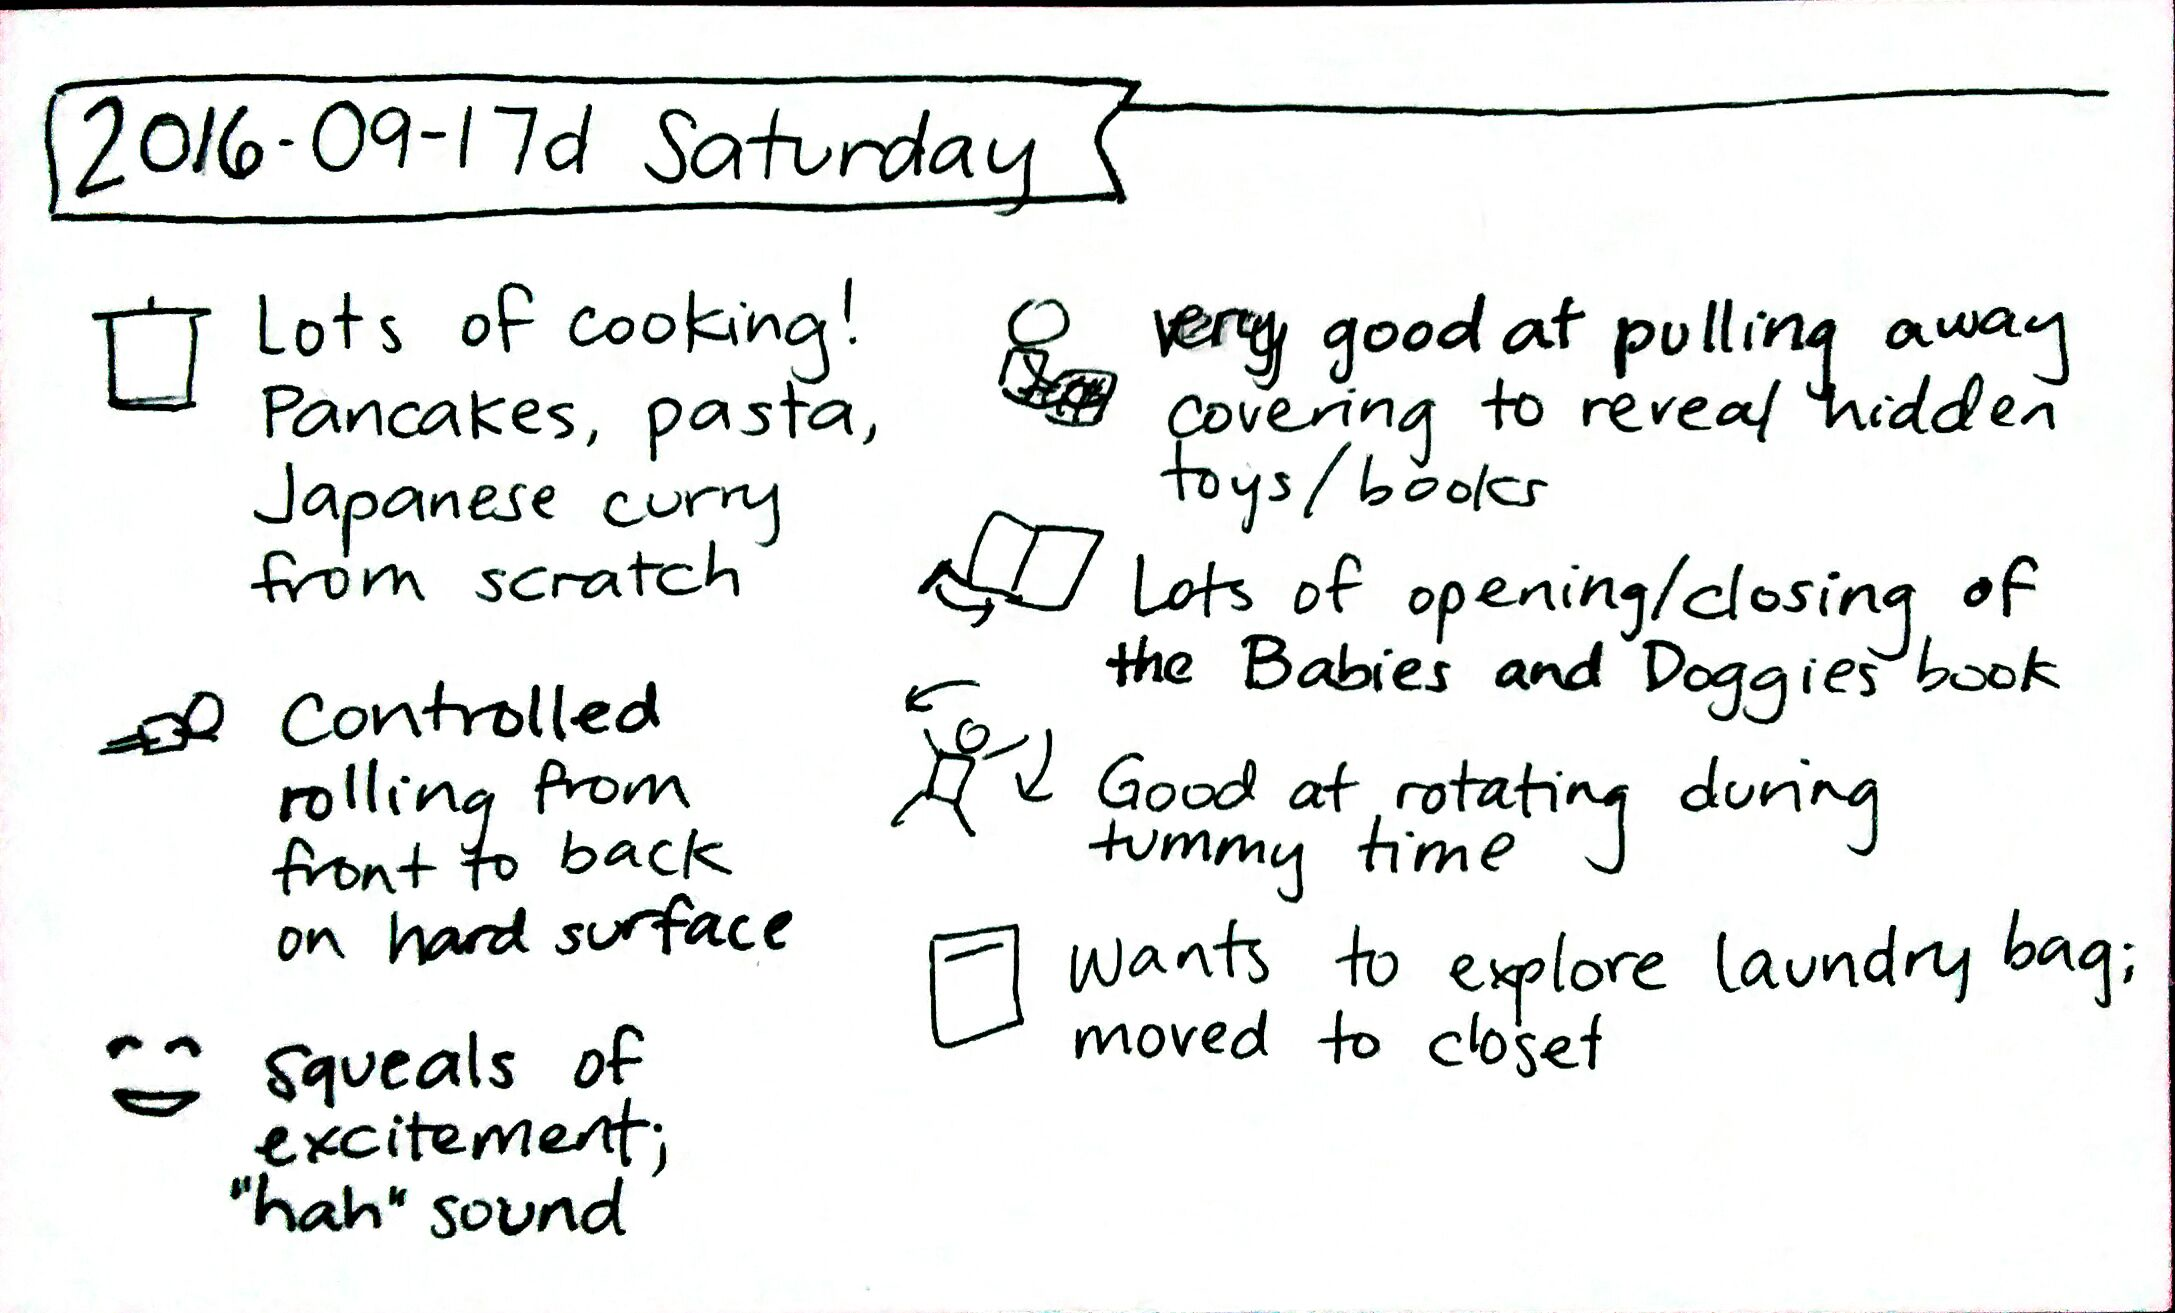 2016-09-17d Saturday #daily #journal.png